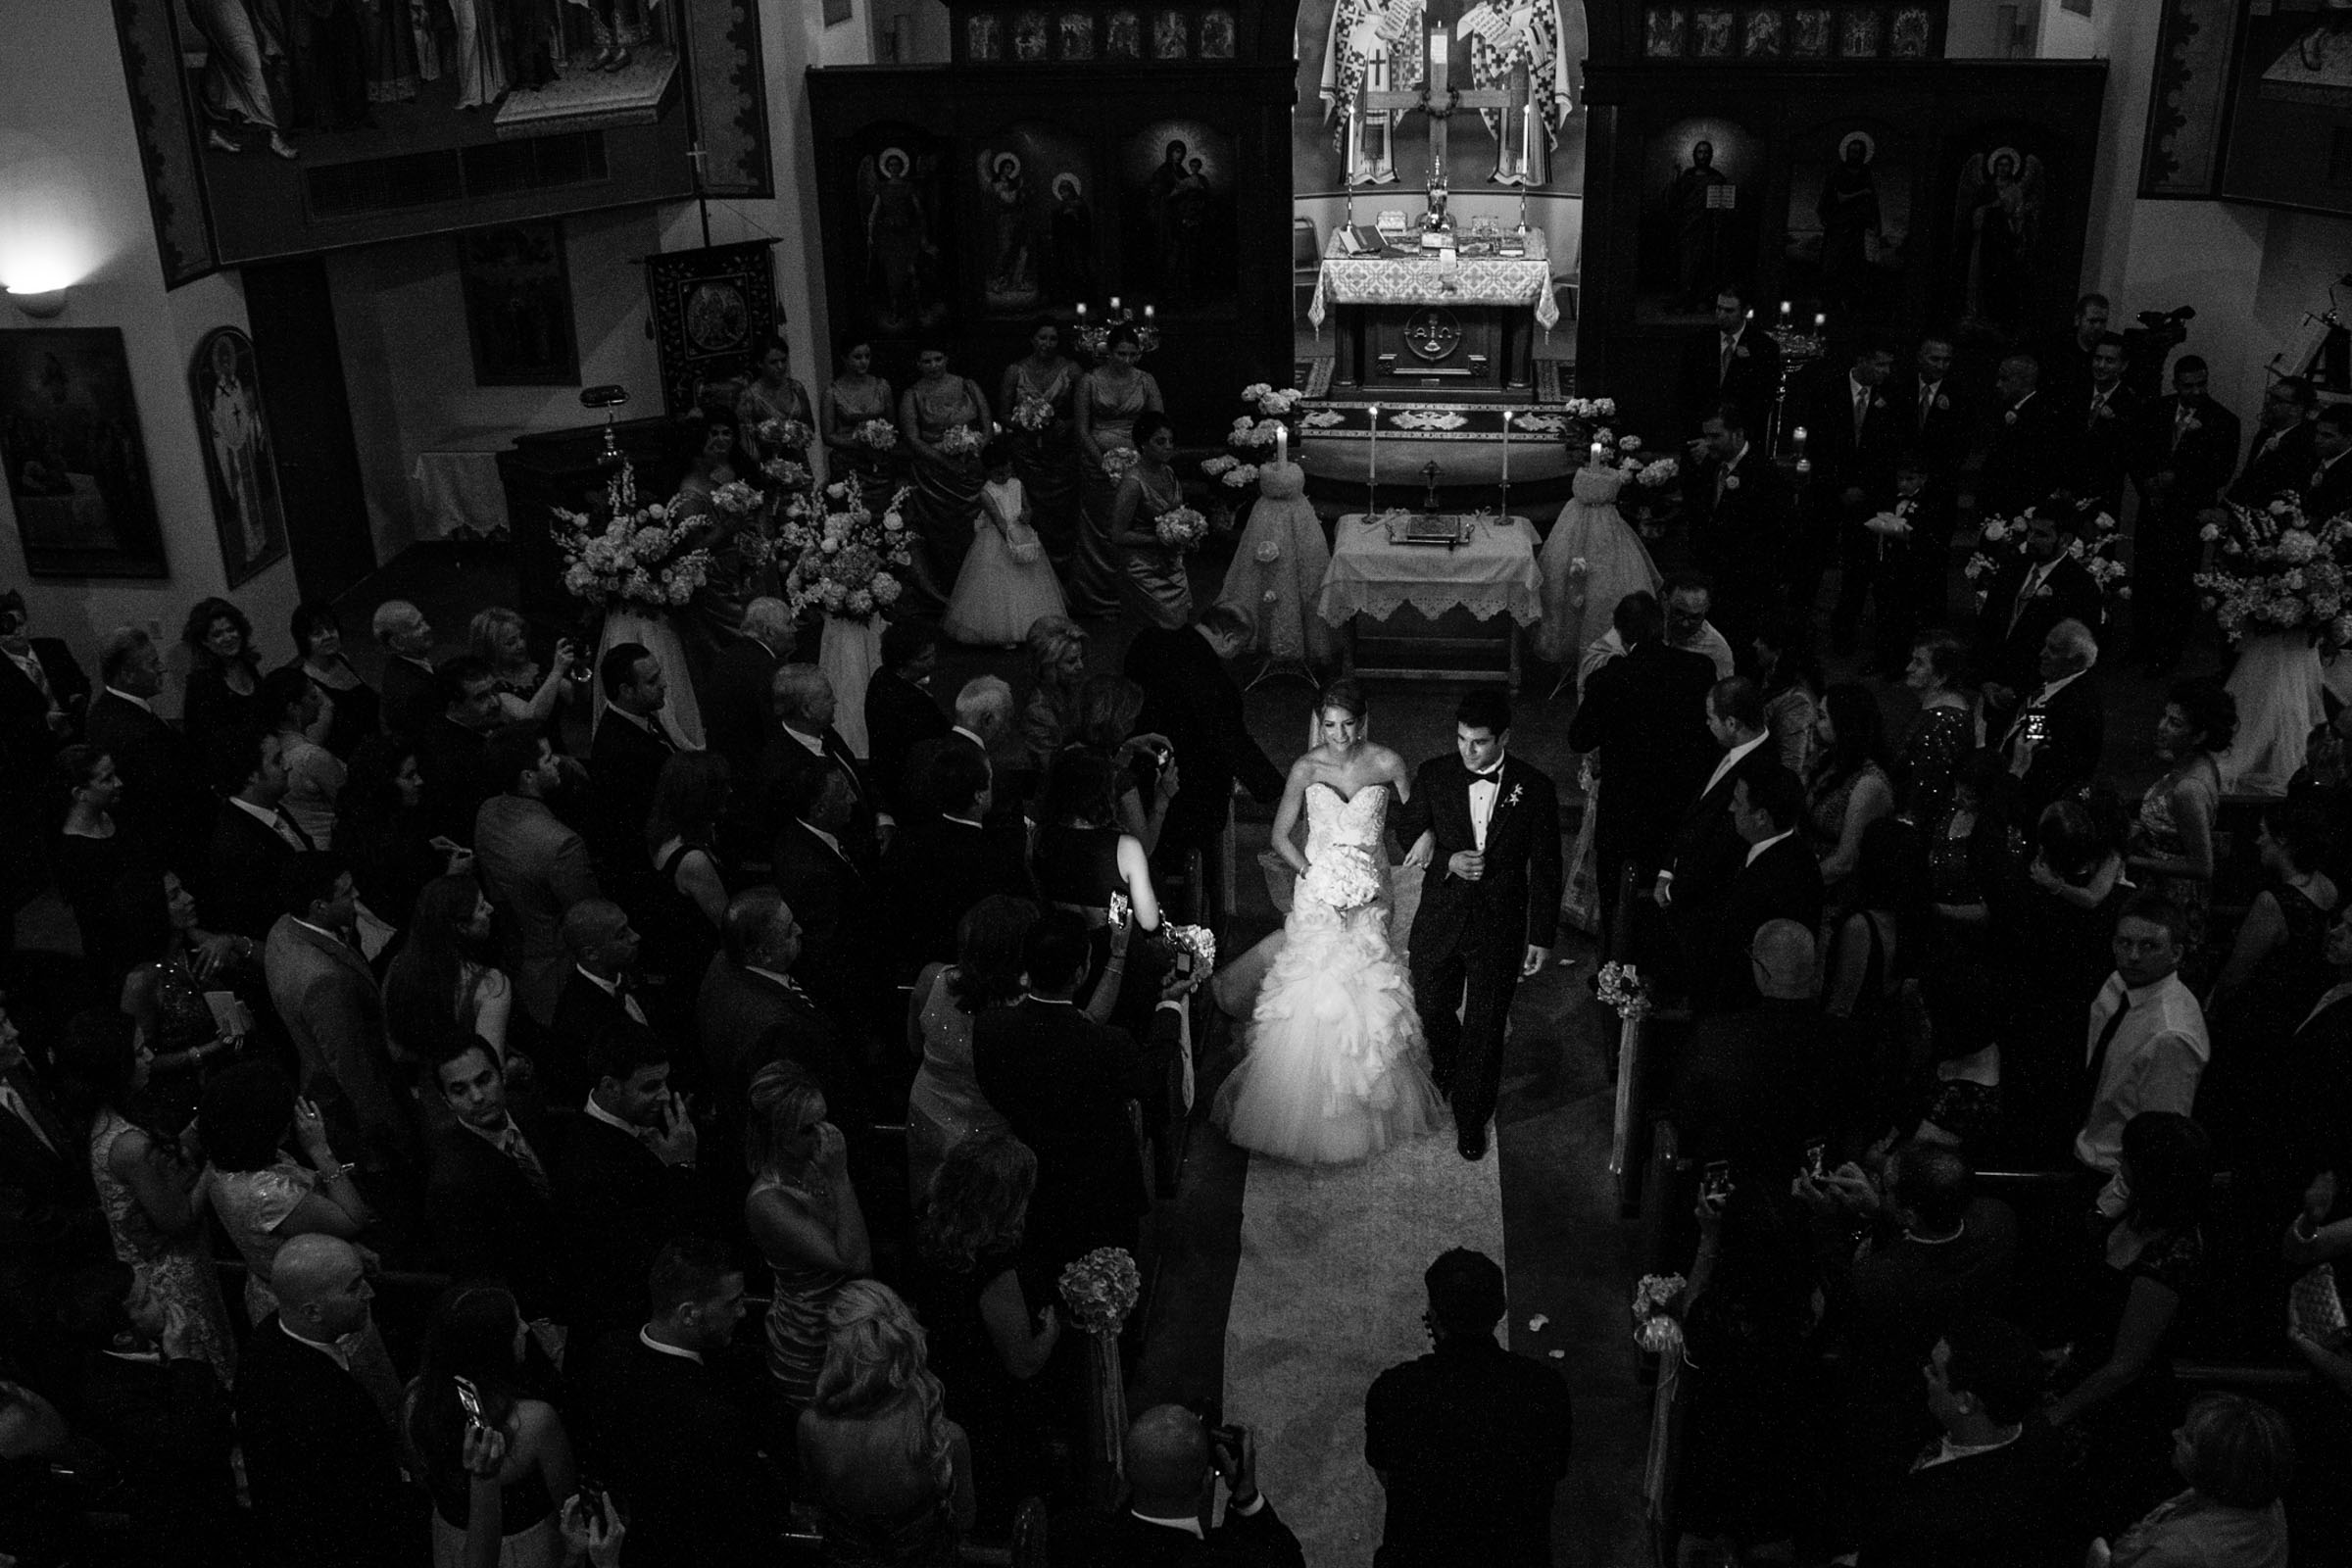 Aerial view of couple recessional in church - photo by MD photo films